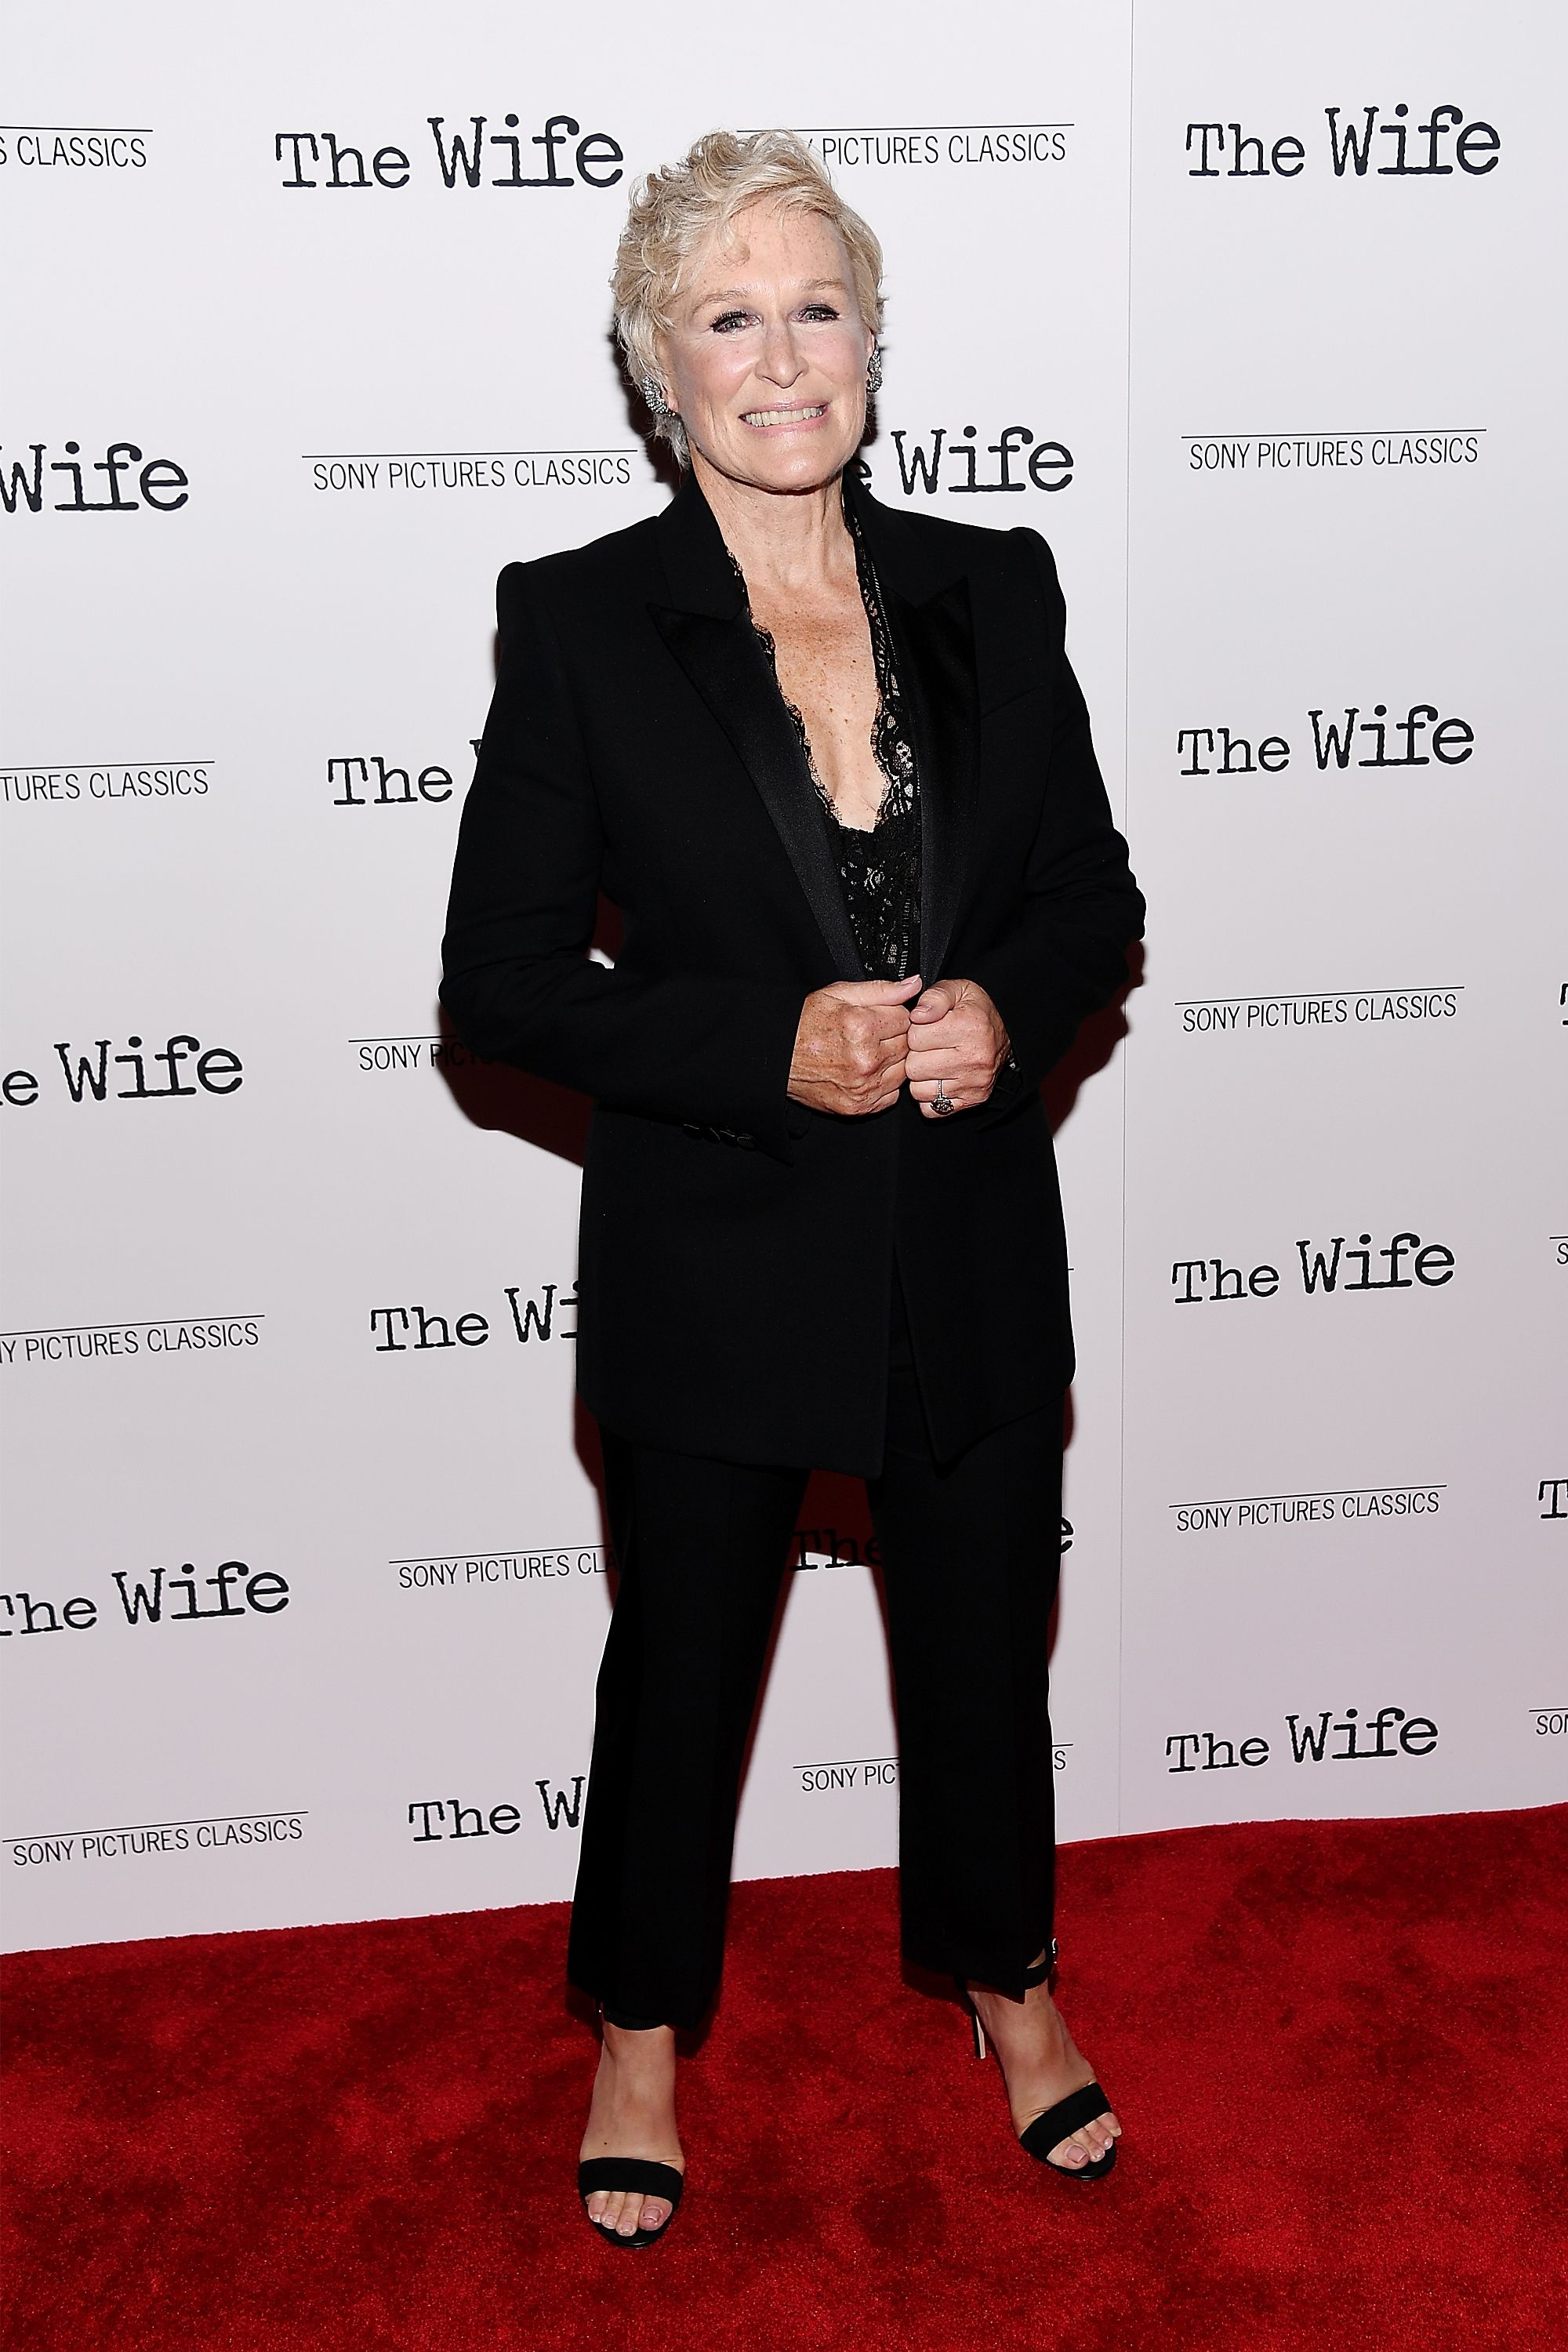 For a screening of The Wife at the Paley Center for Media , Glenn Close paired a tailored black suit with a low cut lace top and black sandal heels.